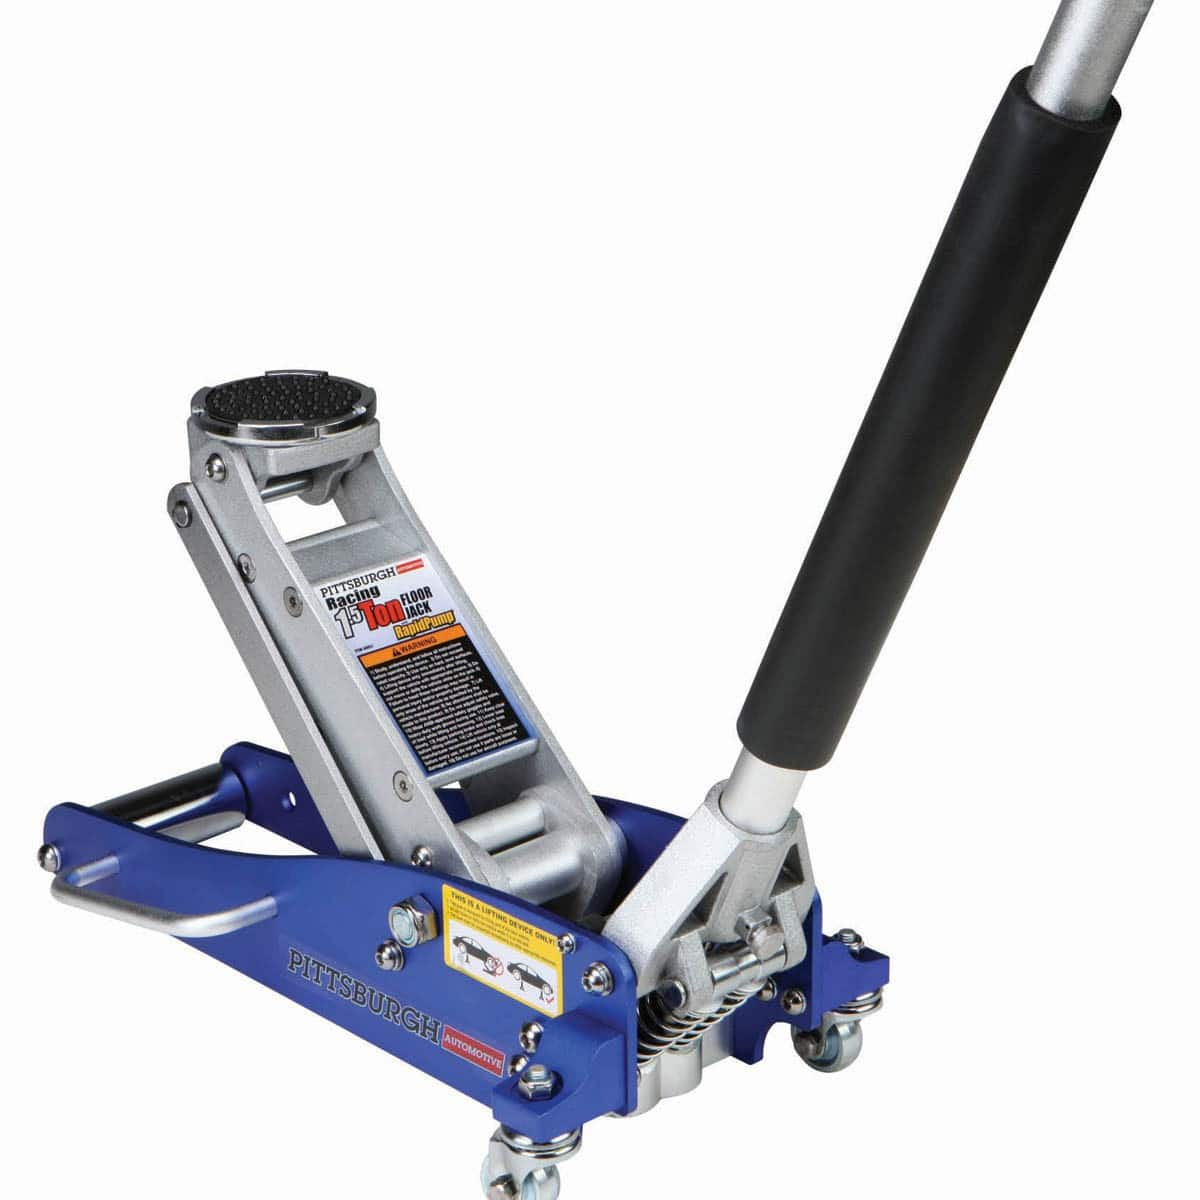 Harbor Freight 1.5 Ton Compact Aluminum Racing Floor Jack with Rapid Pump-No coupon required! $58.99 + $6.99 shipping